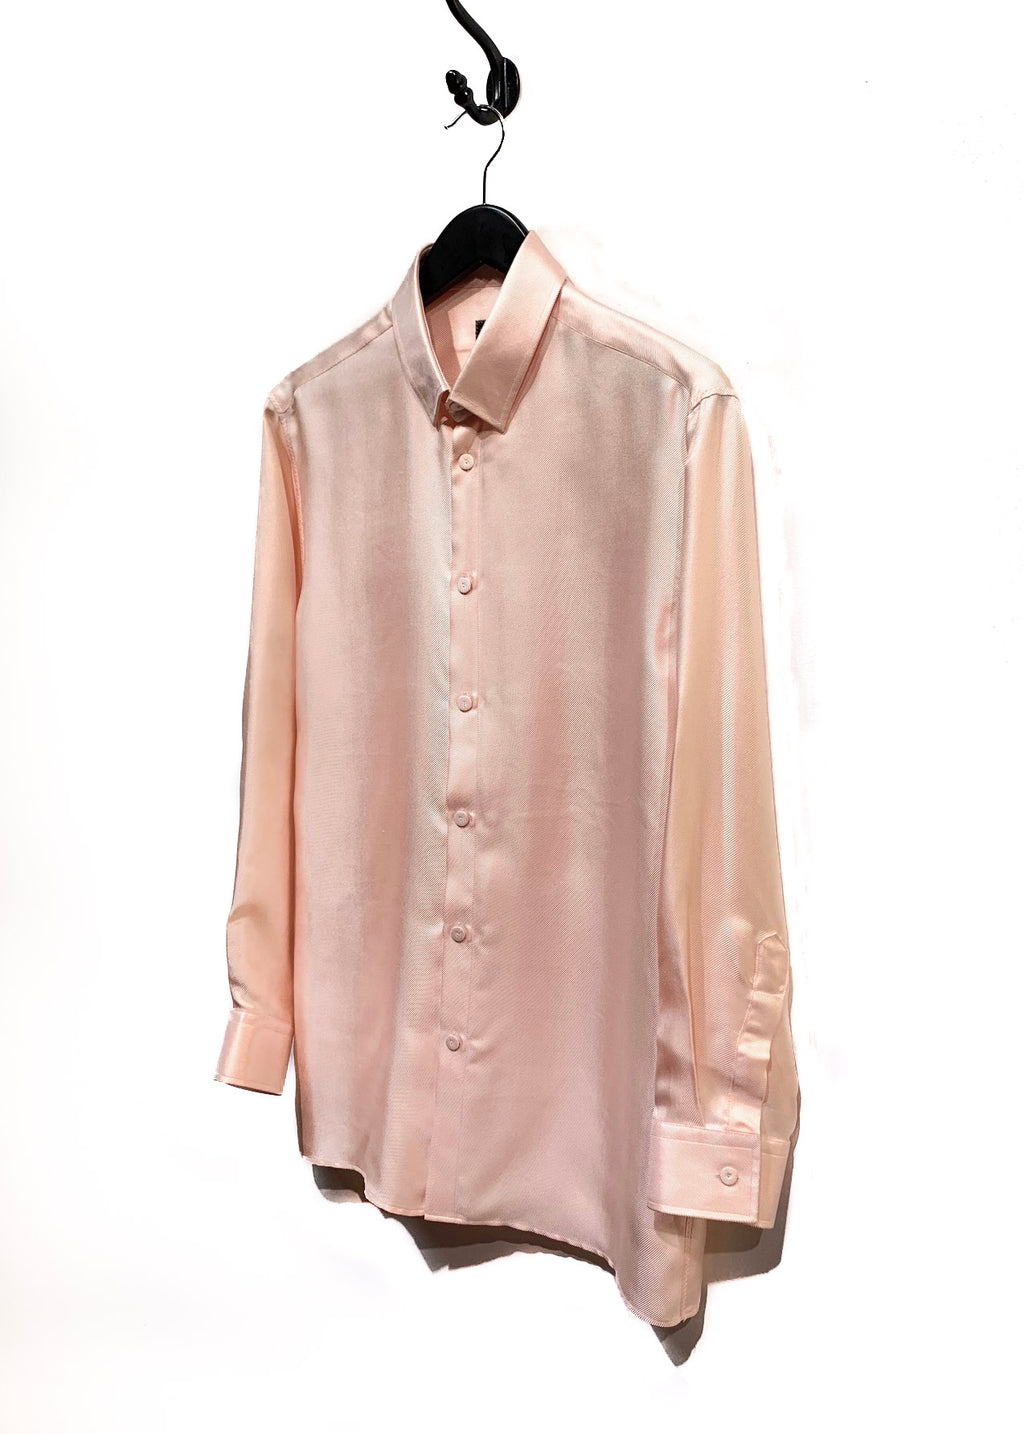 Jean Paul Gaultier Monsieur Light Peach Silk Buttoned Shirt